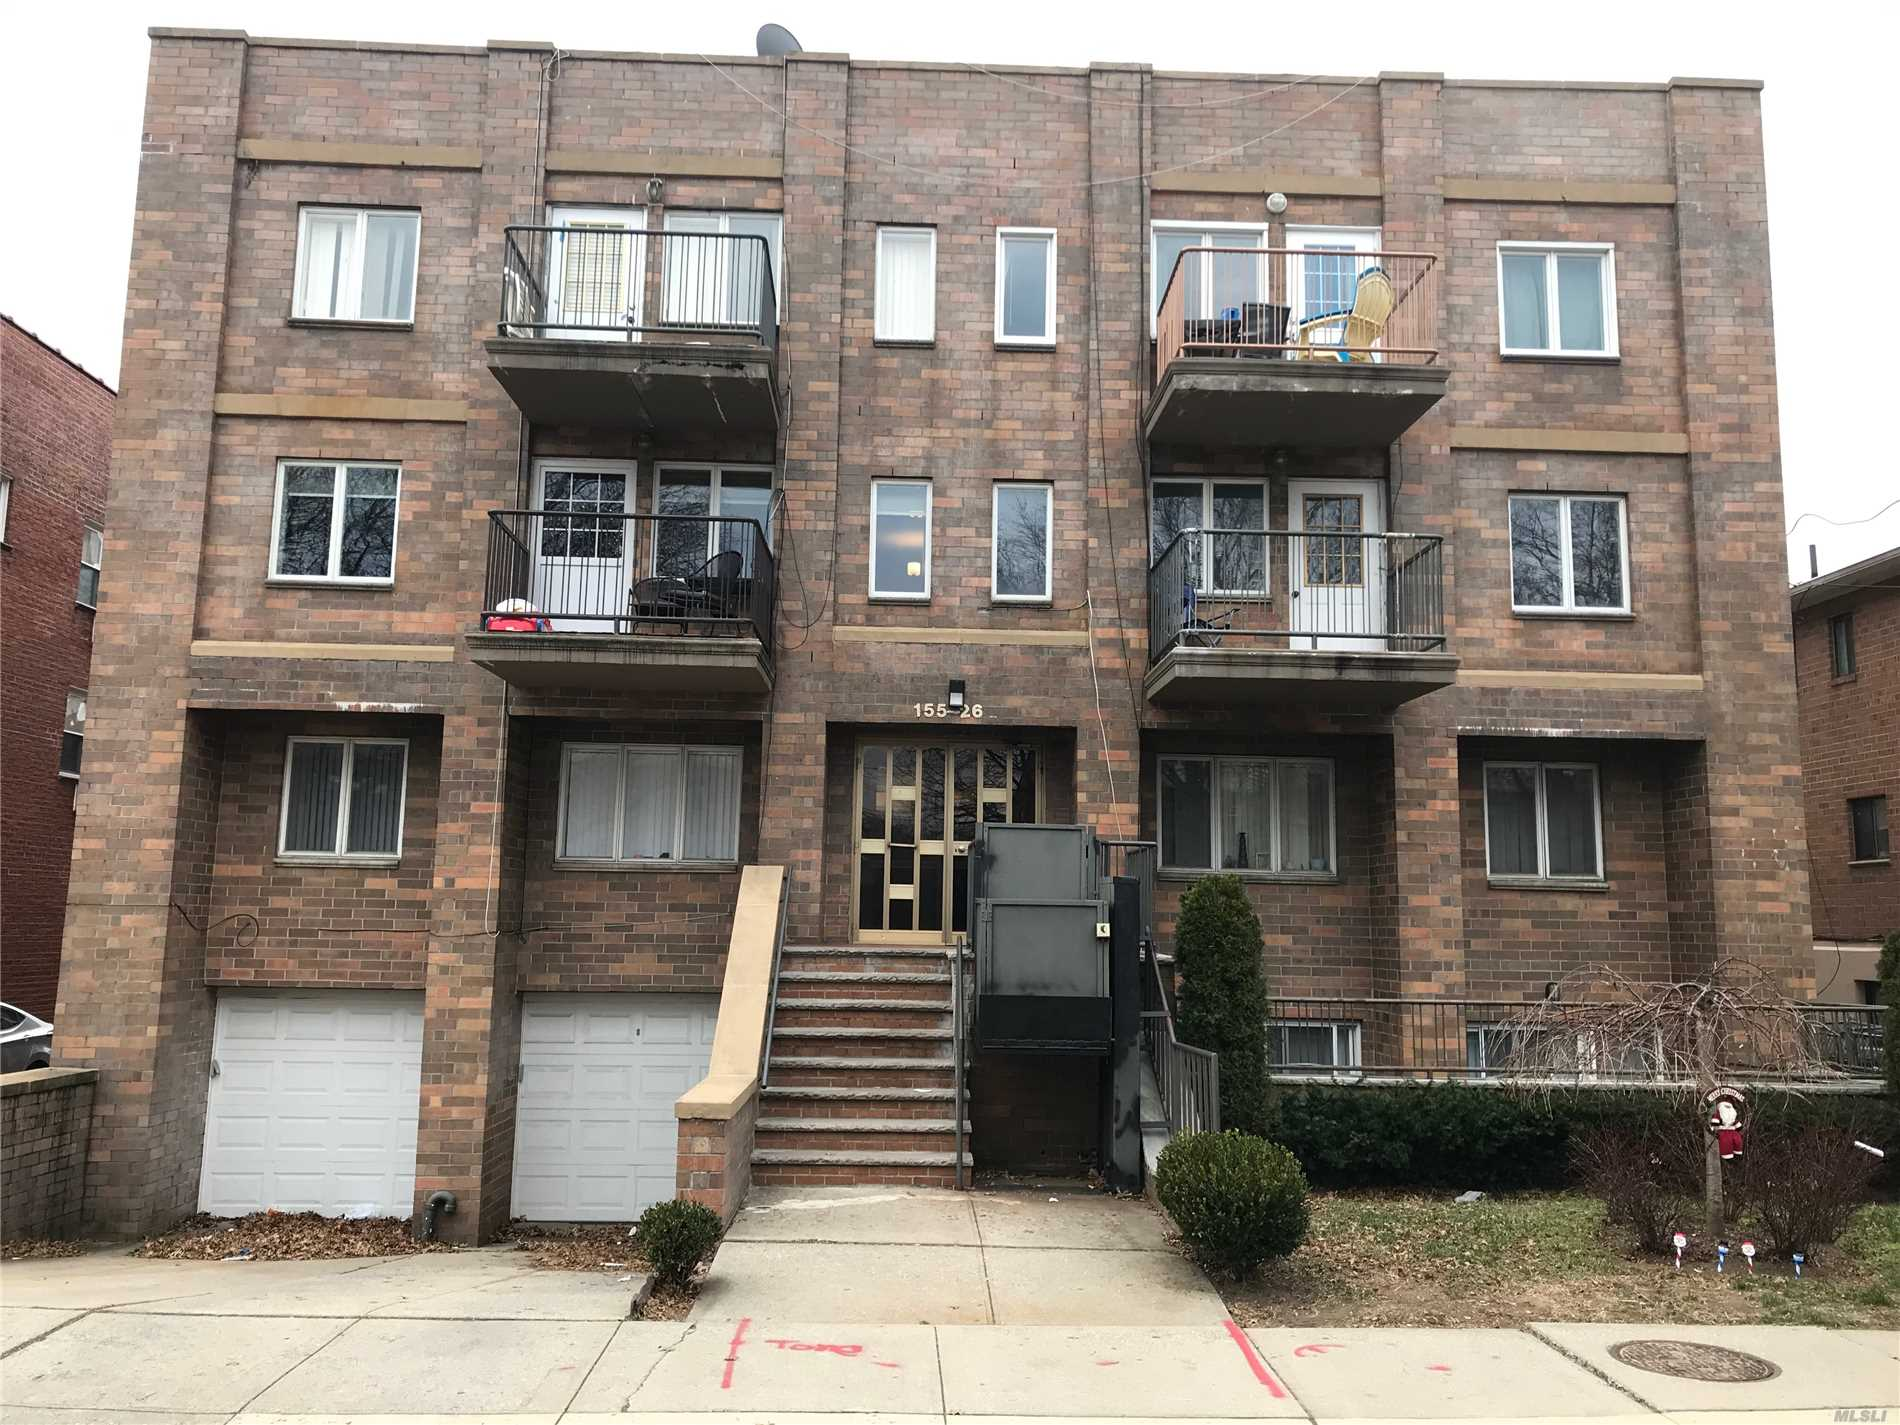 This Is A Condominium Space With 135 Sqft. Common Charges Include The Following: Electric, Water Bill, Liability Insurance, Repairs For Common Areas And Monthly Management Fee.